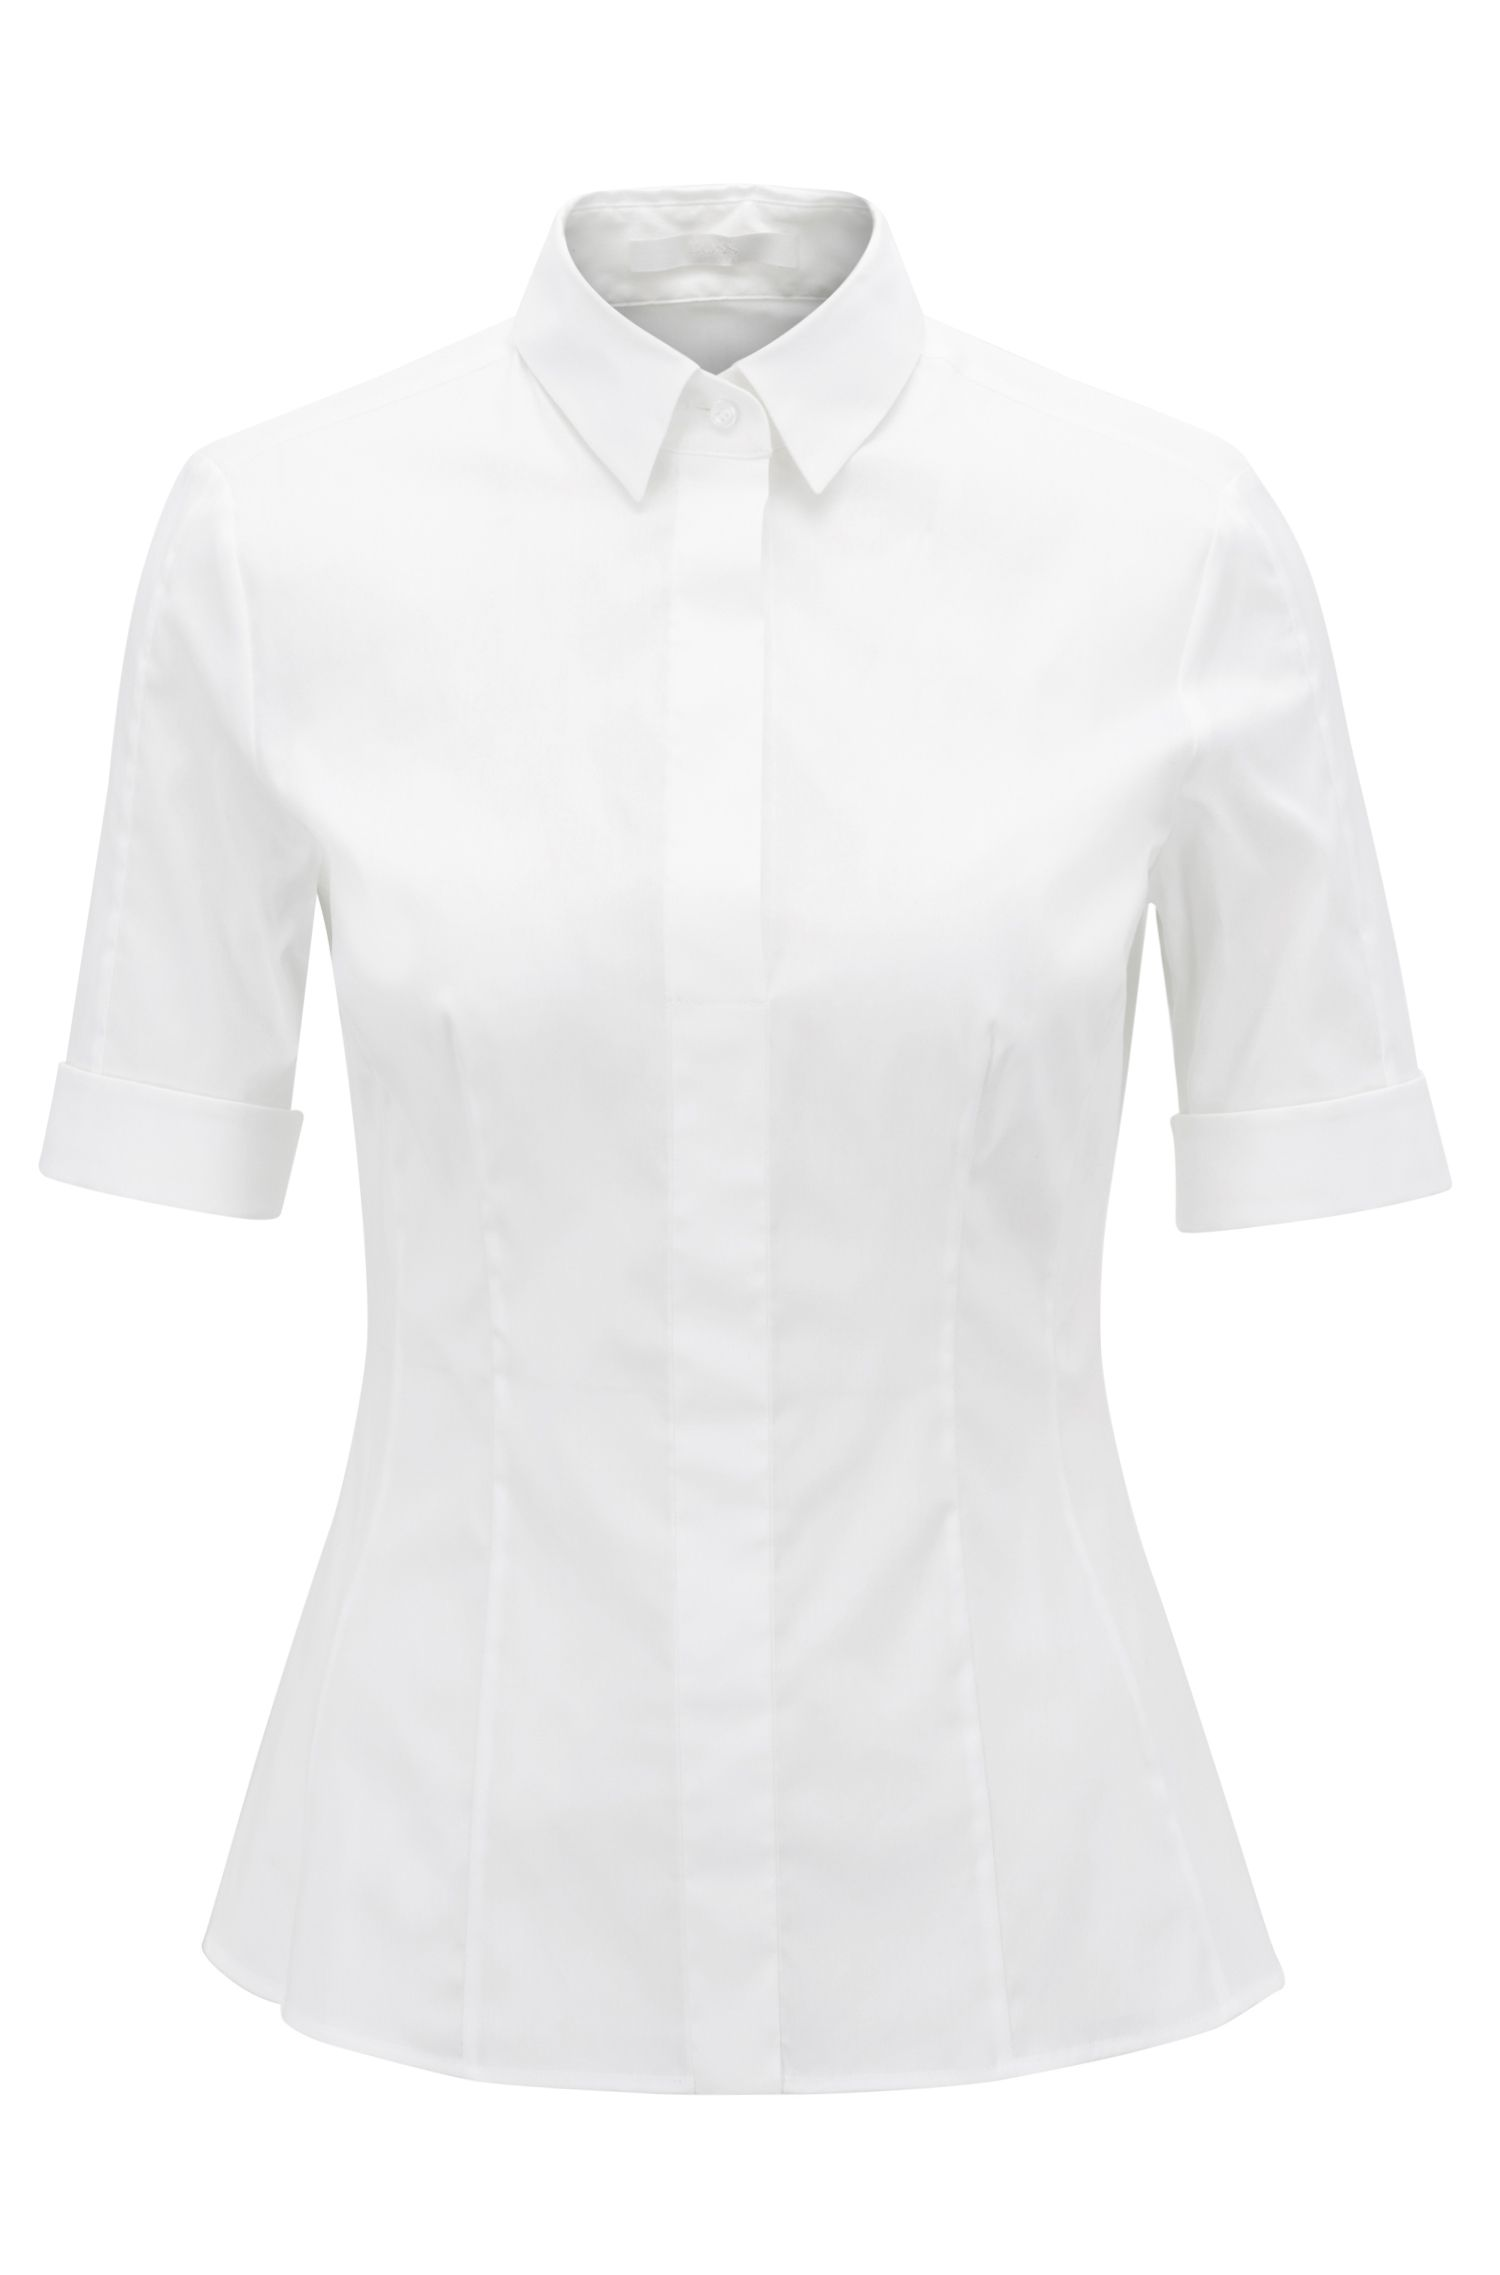 Chemisier Slim Fit BOSS Womenswear Fundamentals en coton mélangé, pourvu d'une patte de boutonnage factice.